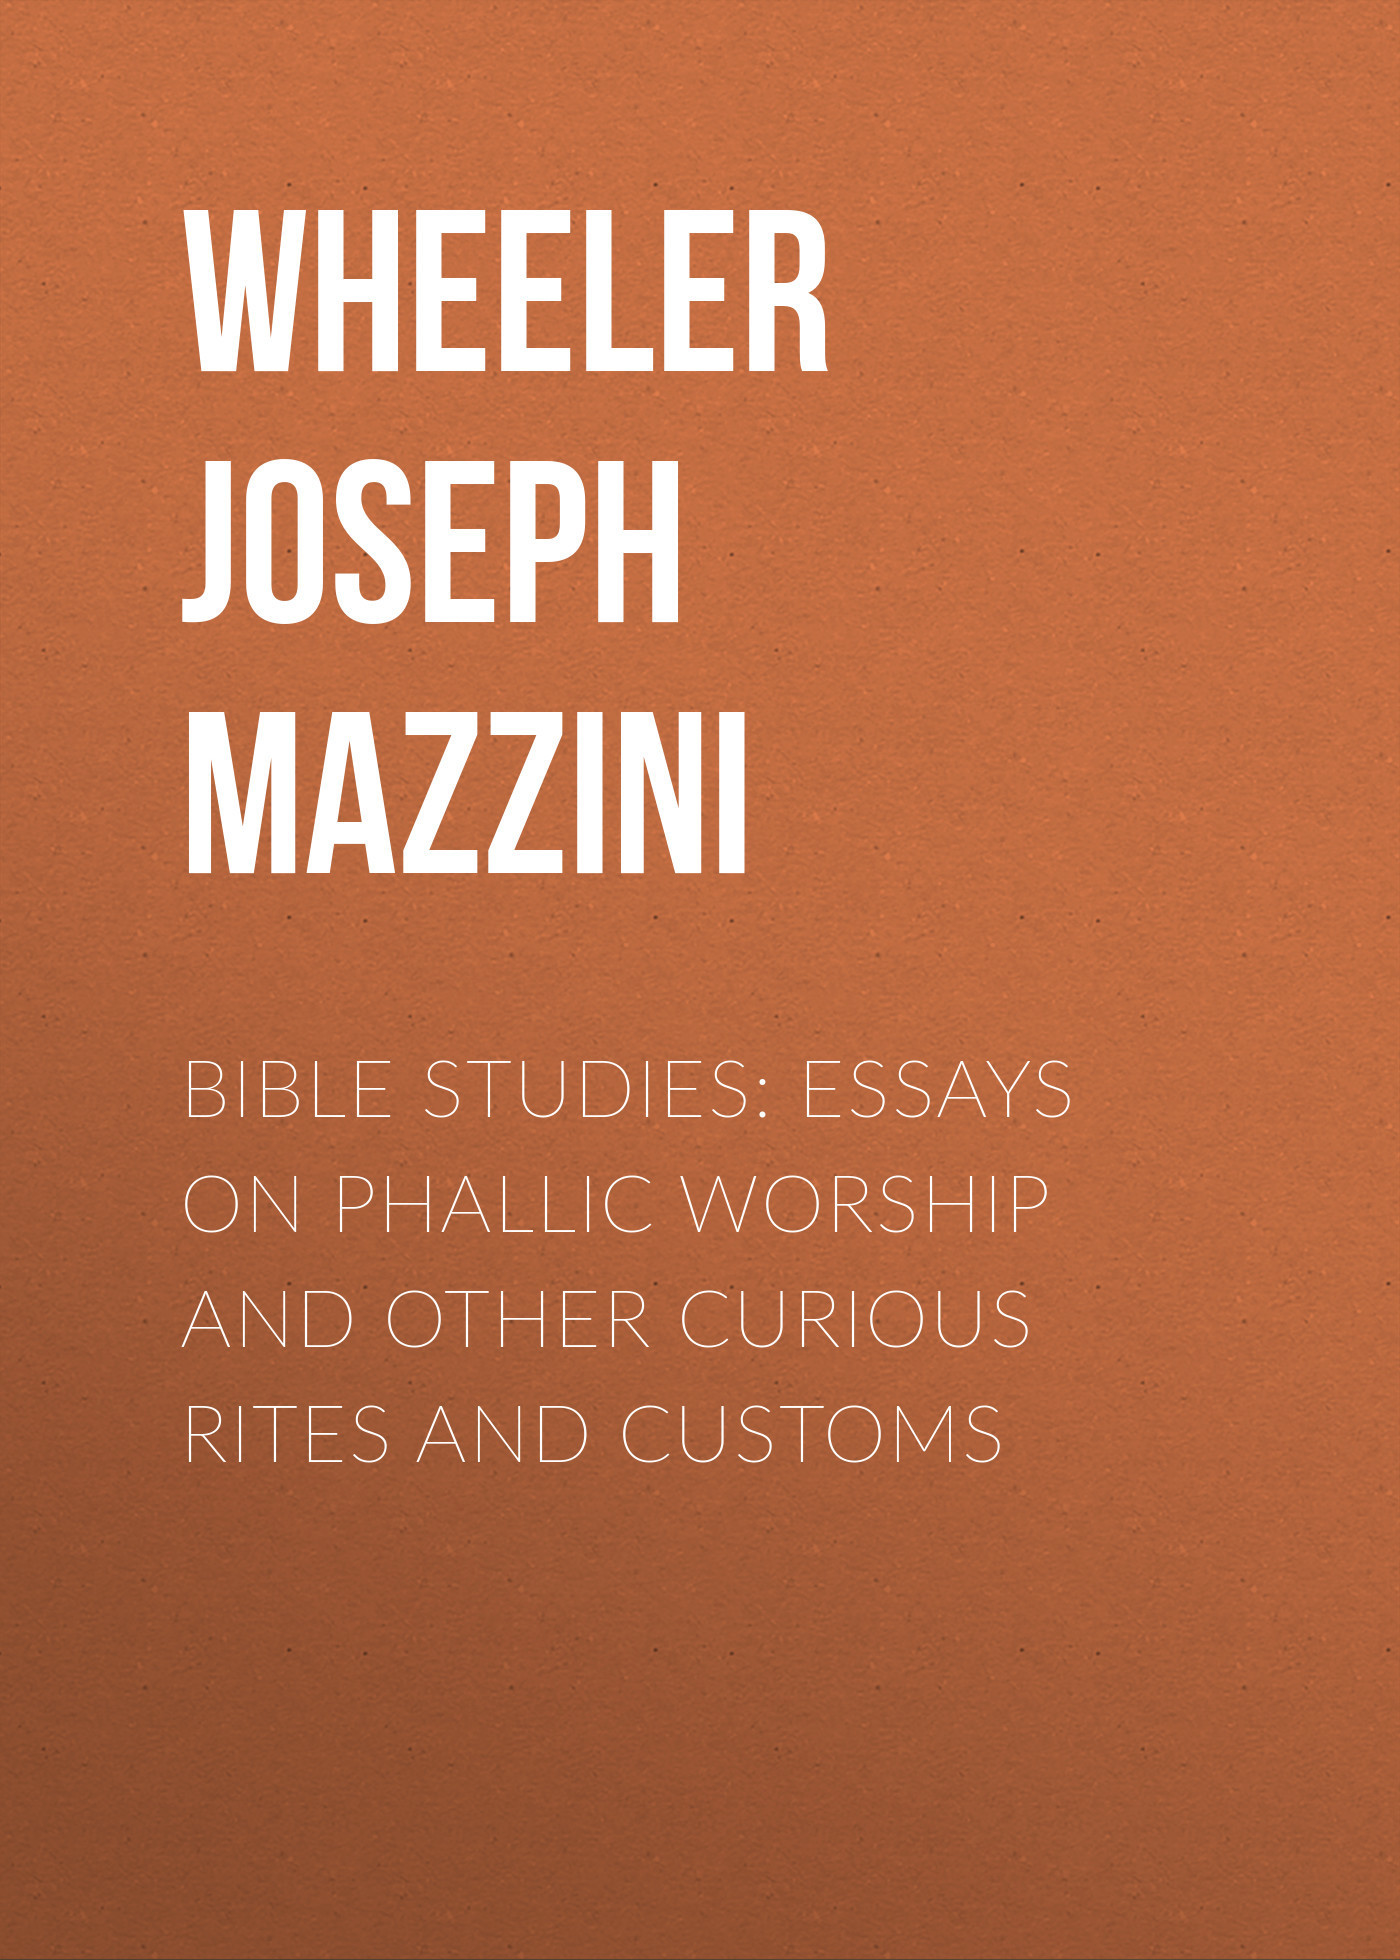 Wheeler Joseph Mazzini Bible Studies: Essays on Phallic Worship and Other Curious Rites and Customs